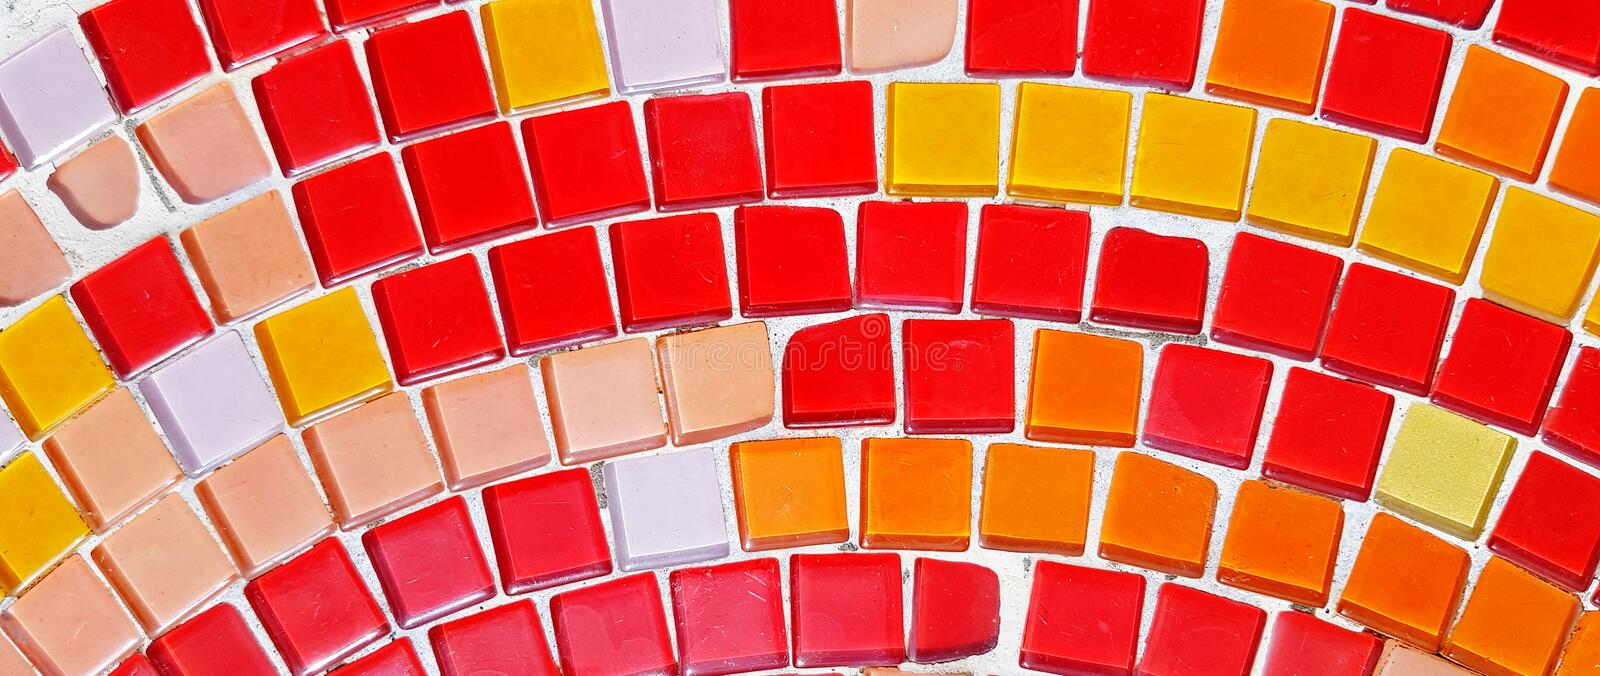 Colorful of red, pink, orange and white mosaic tile floor or wall for background royalty free stock photos